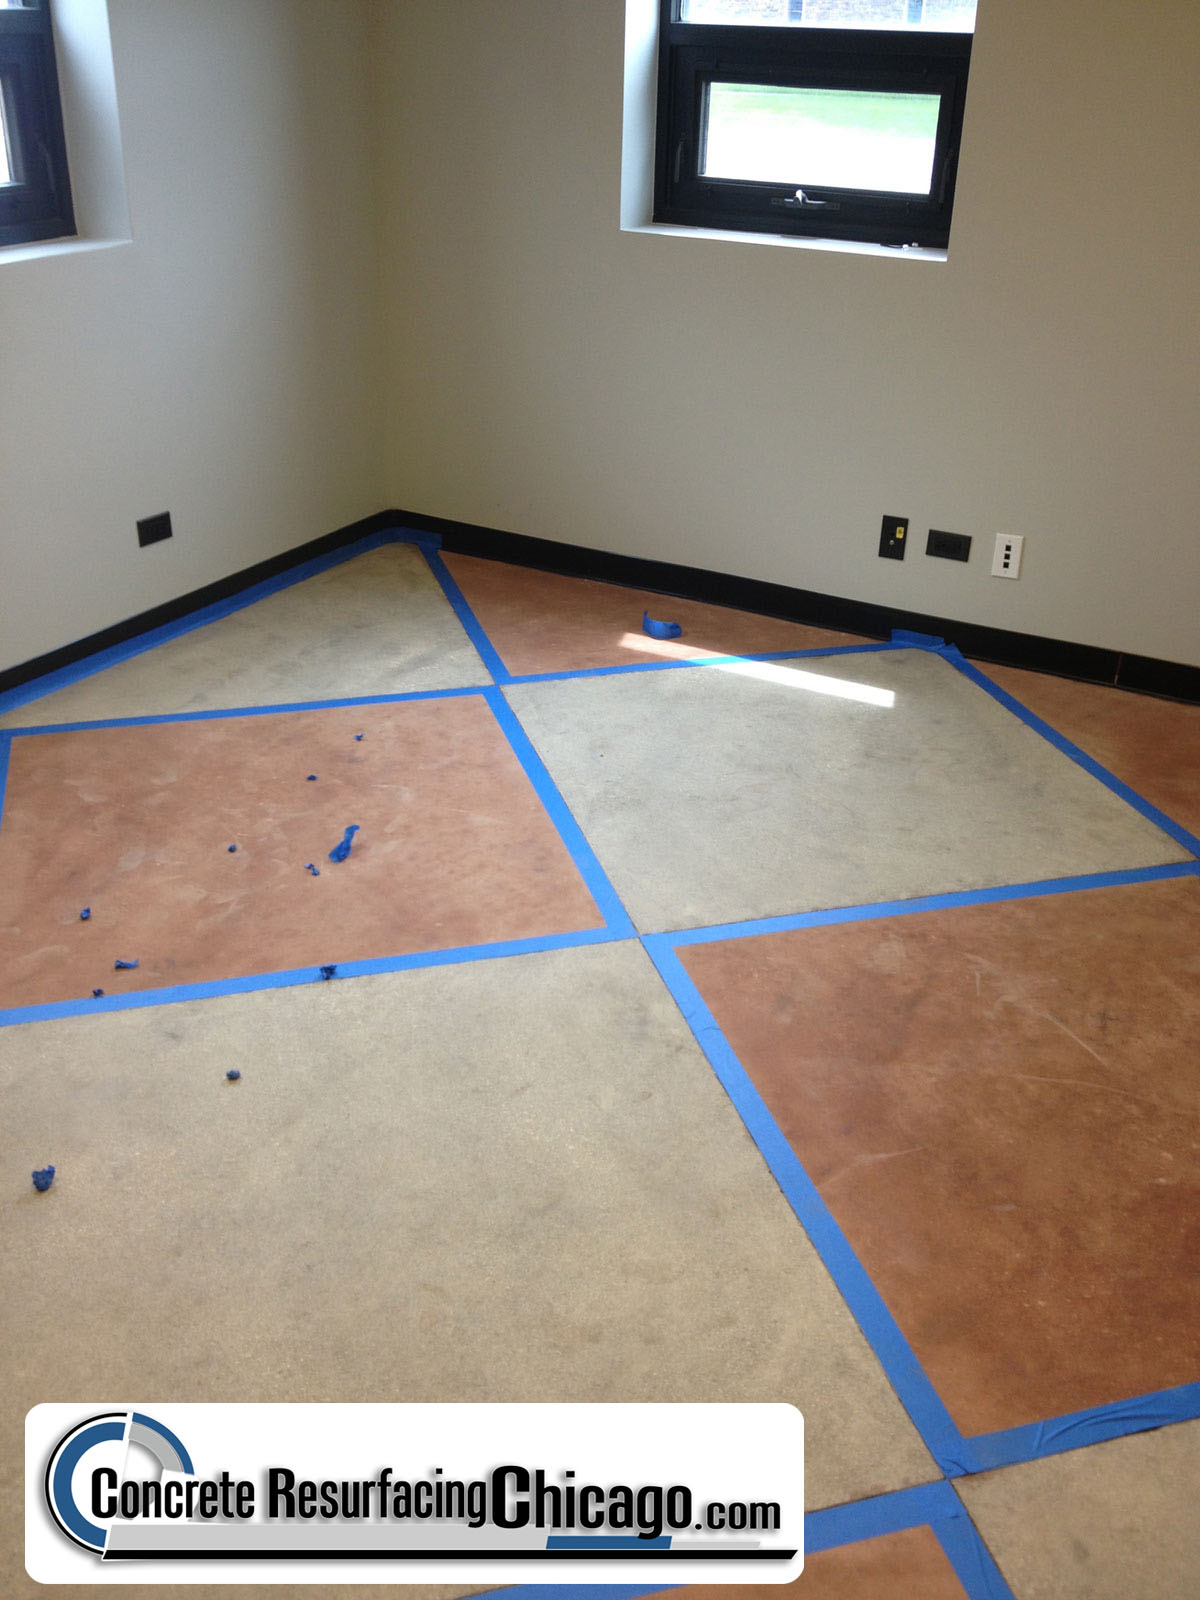 630-448-0317 - Metallic Floors Concrete Resurfacing Solutions Serving Chicagoland